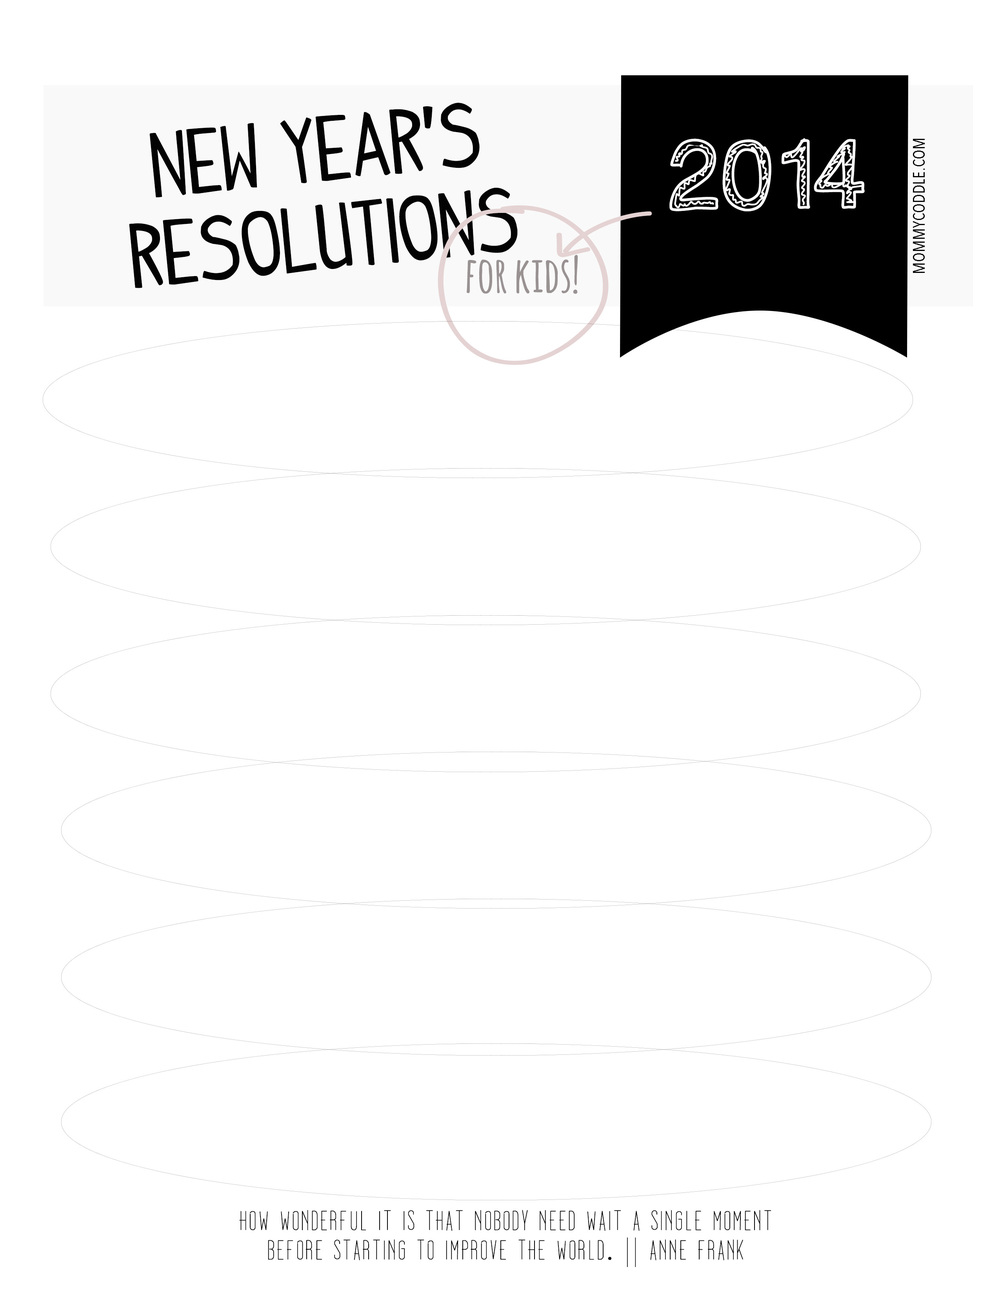 photo relating to New Year Resolution Printable named A printable Fresh Many years Resolutions sheet for youngsters - MommyCoddle